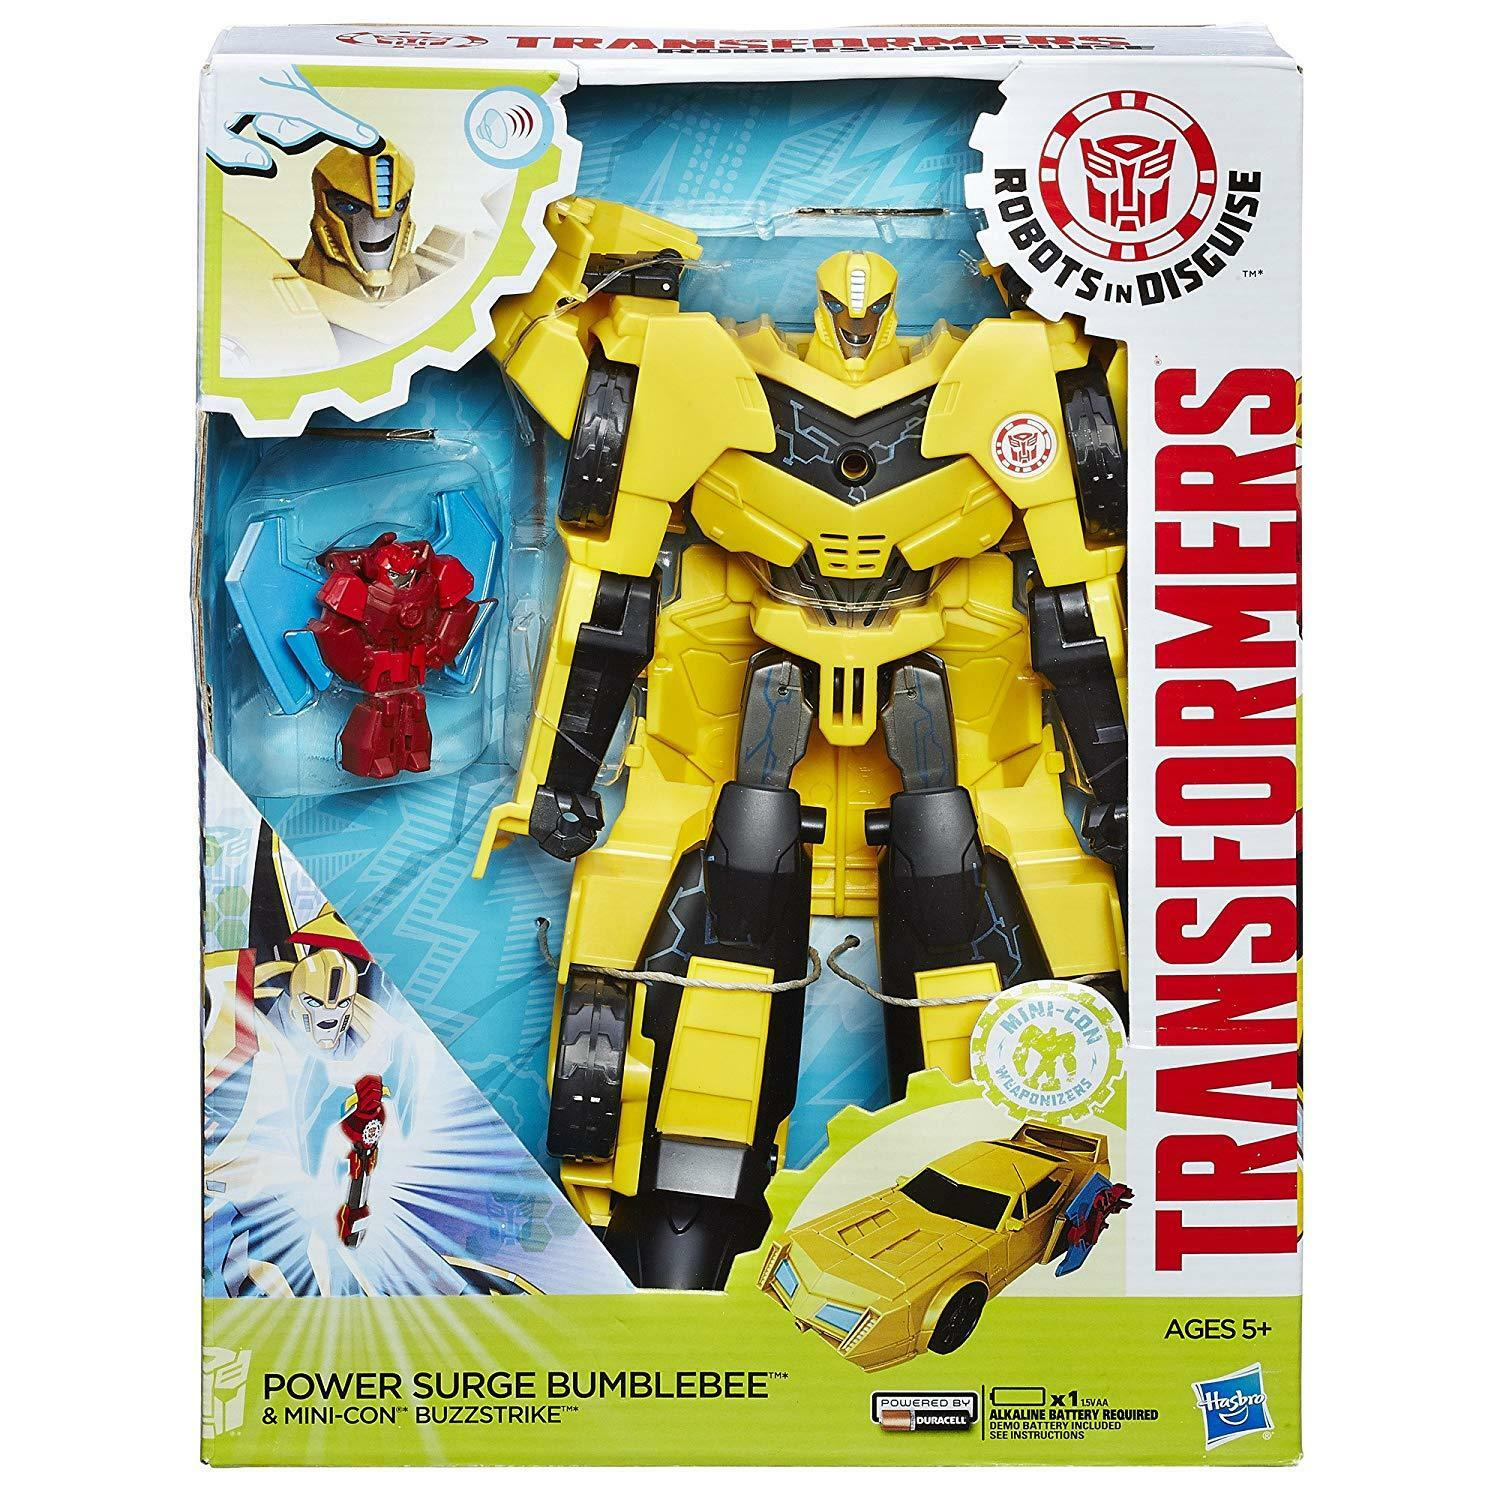 Transformers Robots in Disguise Power Surge Bumblebee and Mini Con Buzzstrike